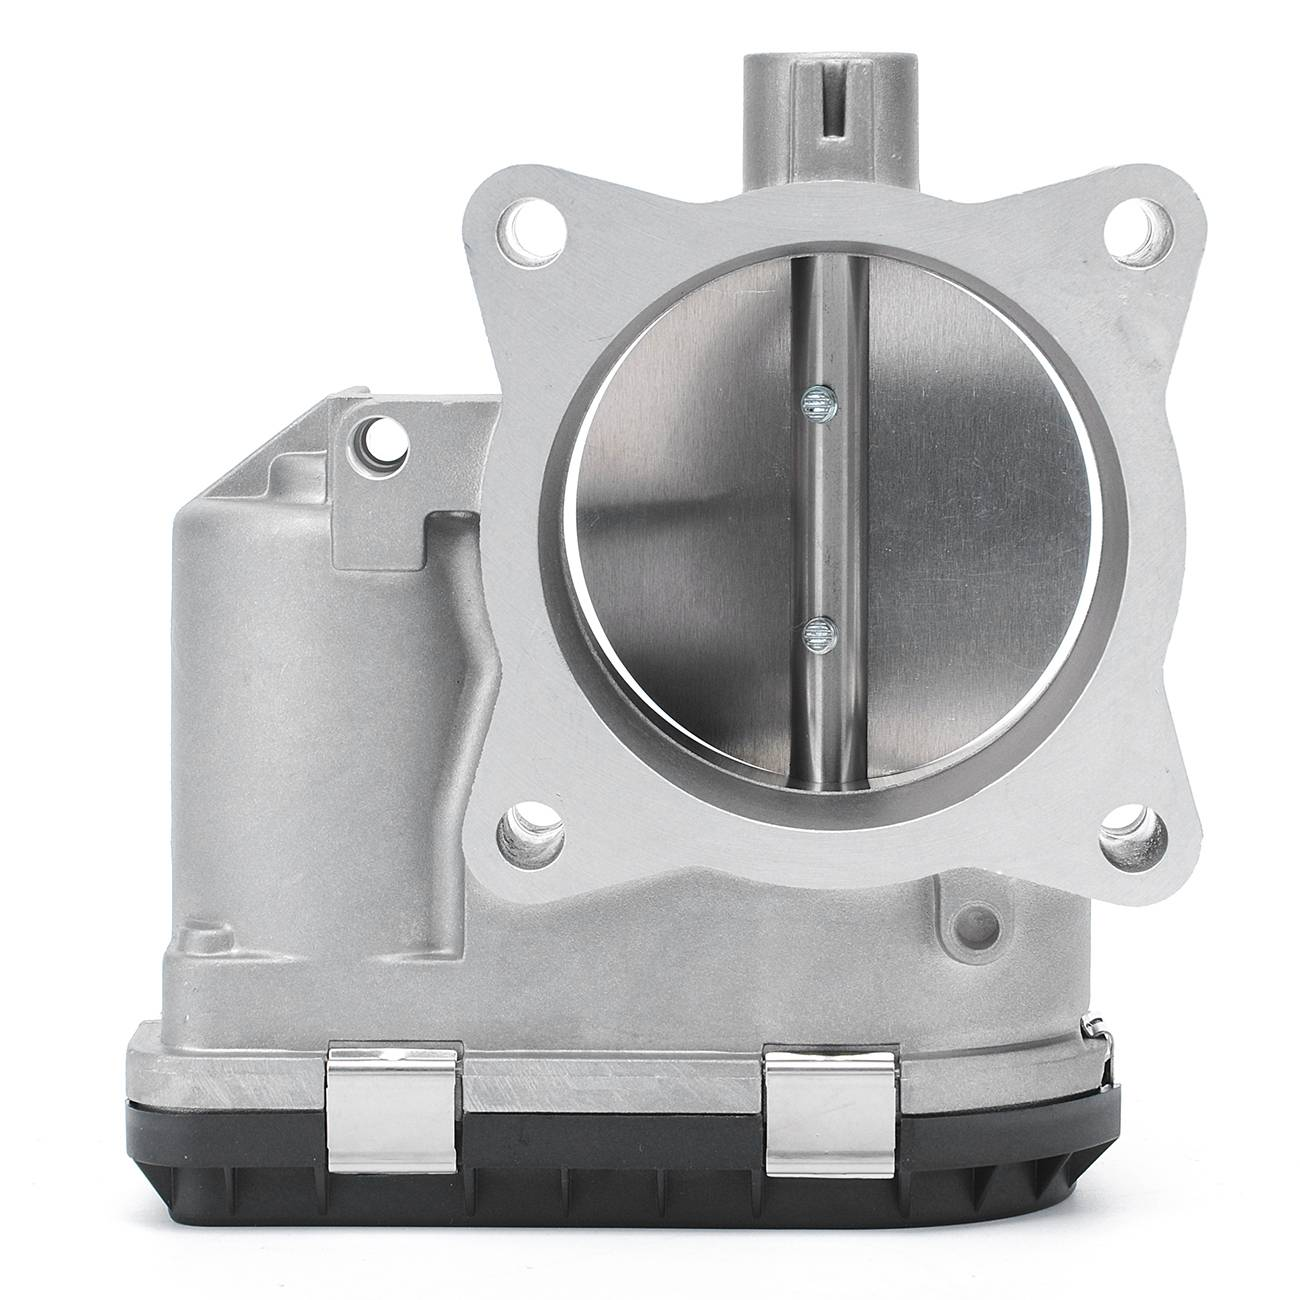 Bapmic 30711554 Fuel Injection Throttle Body Assembly for Volvo S60 V70  XC70 XC90 S80